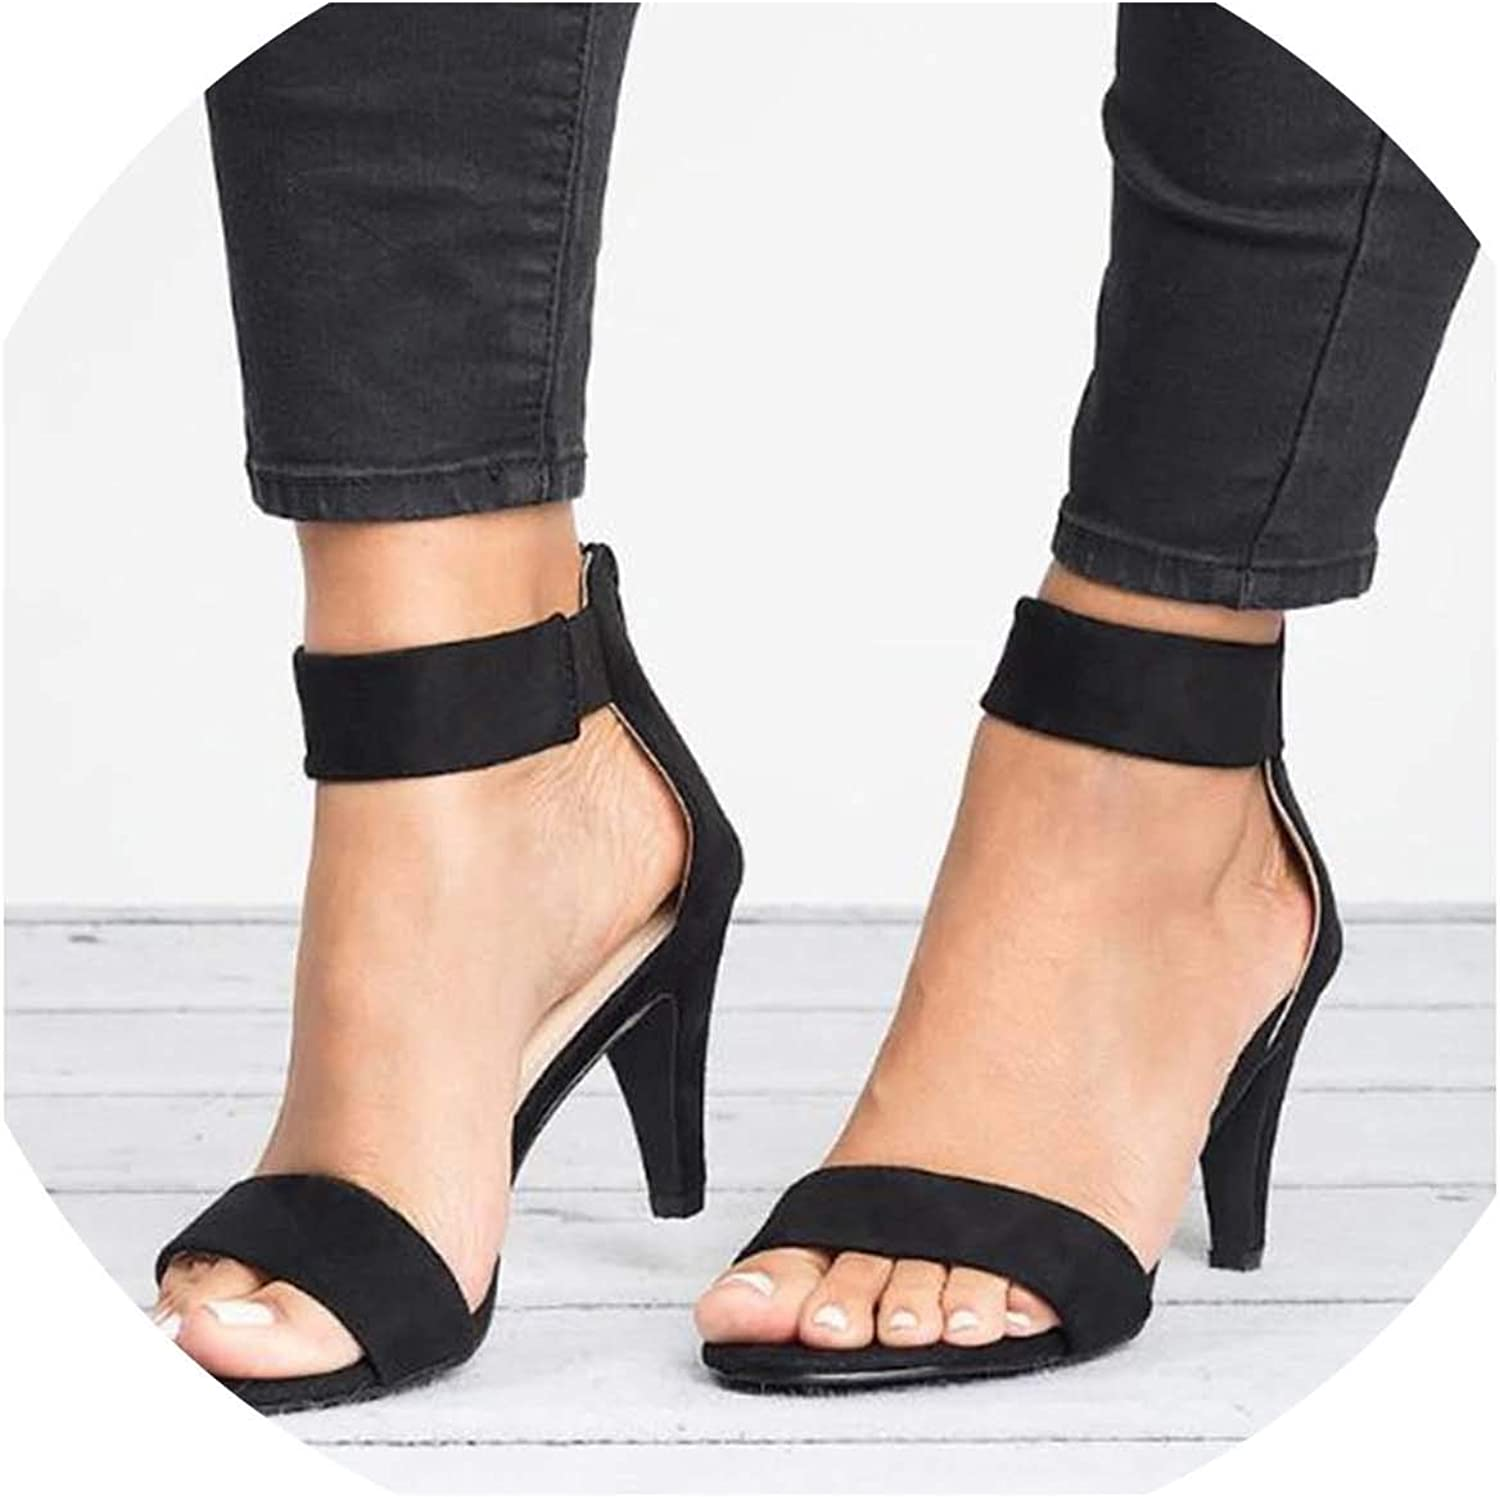 HuangKang Fashion Woman Summer Sandals Stretch Fabric Heel shoes Sexy Lady Fashion Party Queen Sandal